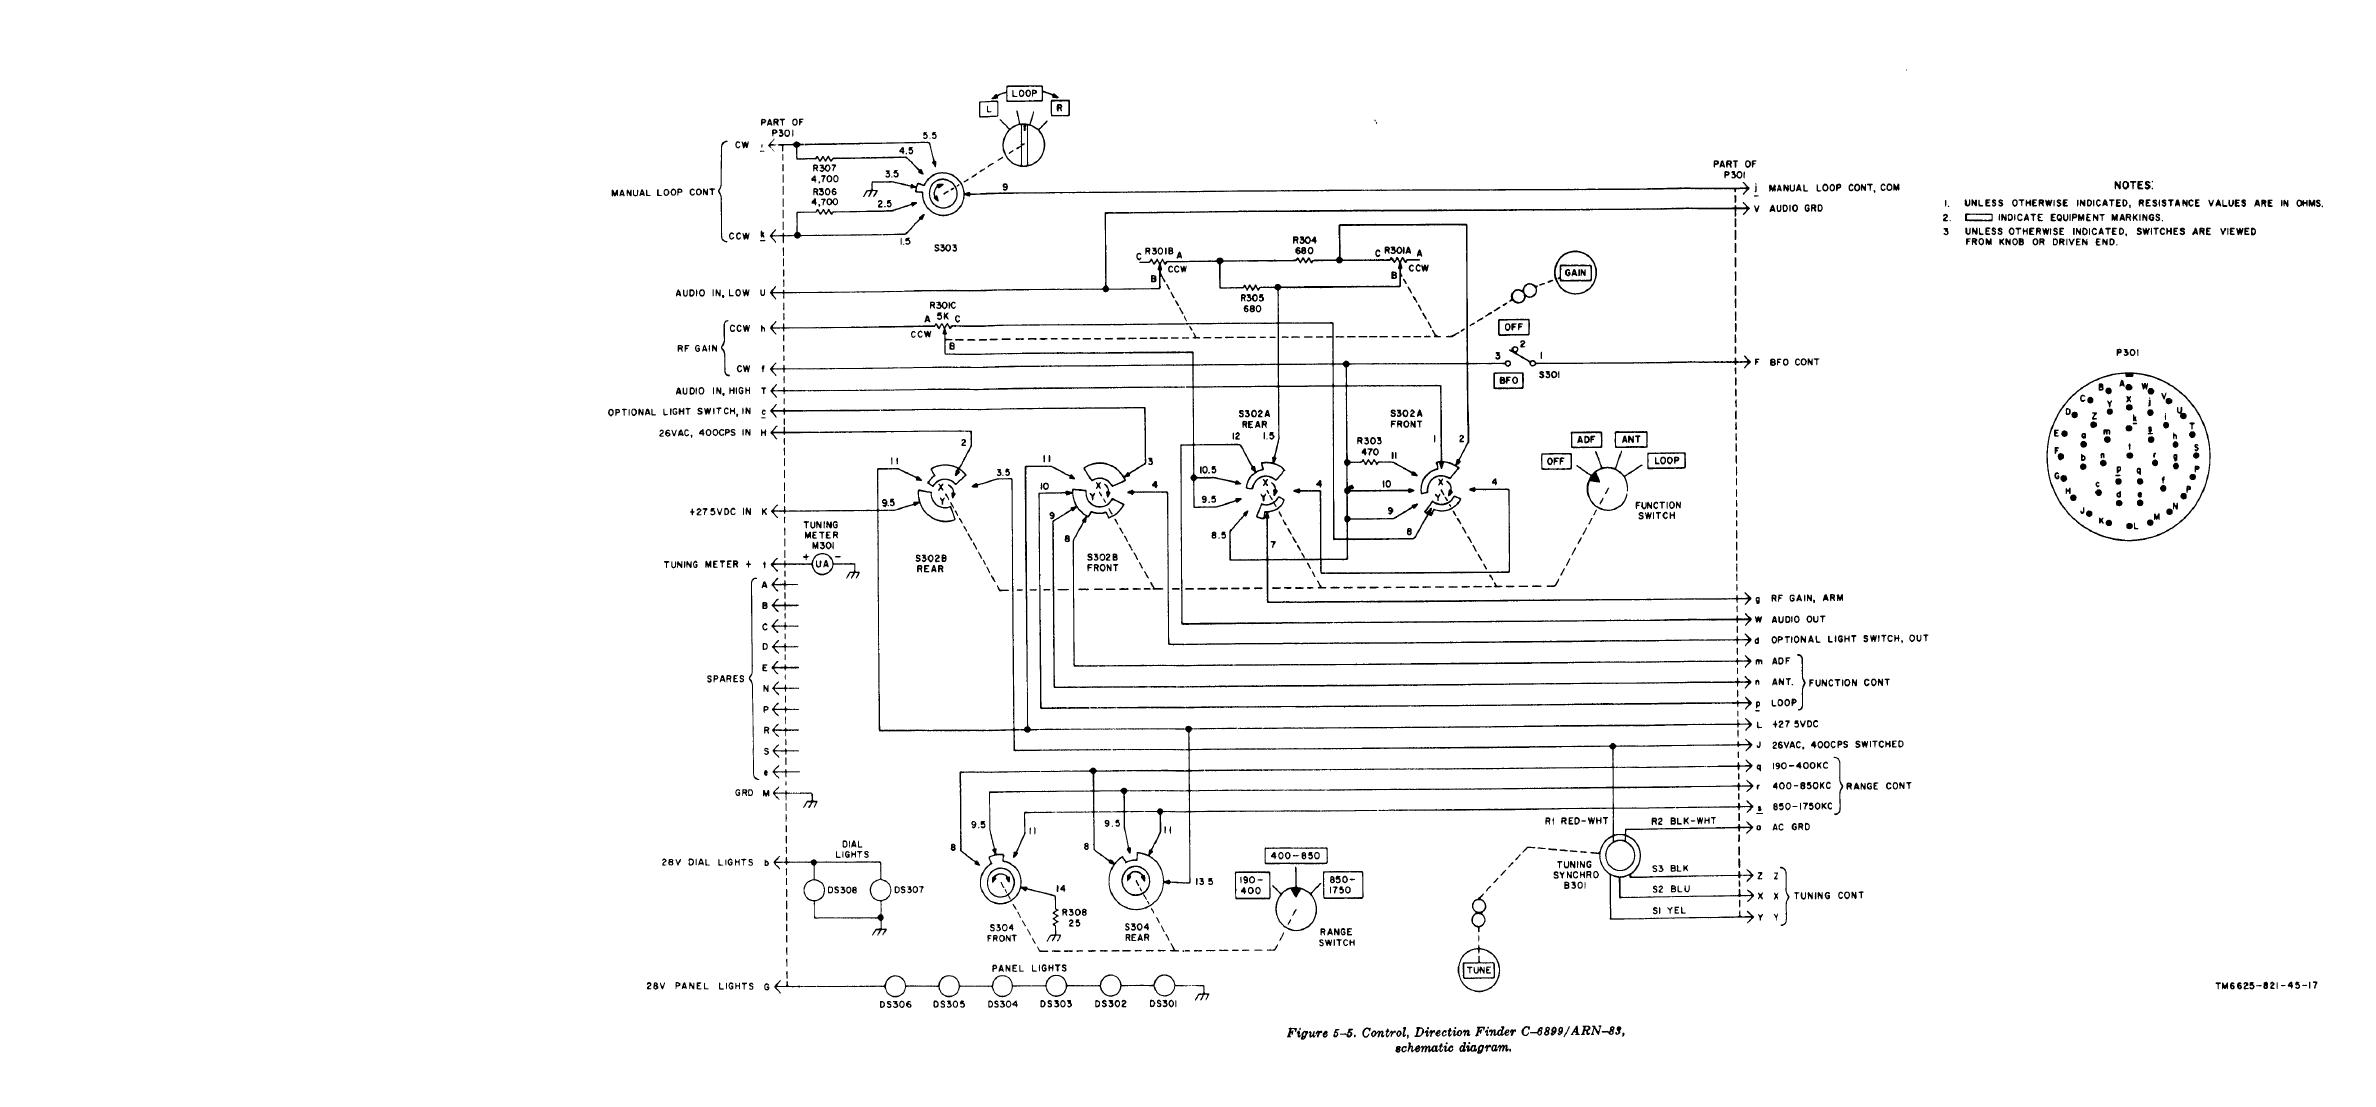 Popular Circuits Page 189 555 Timebase Circuit Internal Structure 555circuit Control Direction Finder C 6899 Arn 83 Transformer